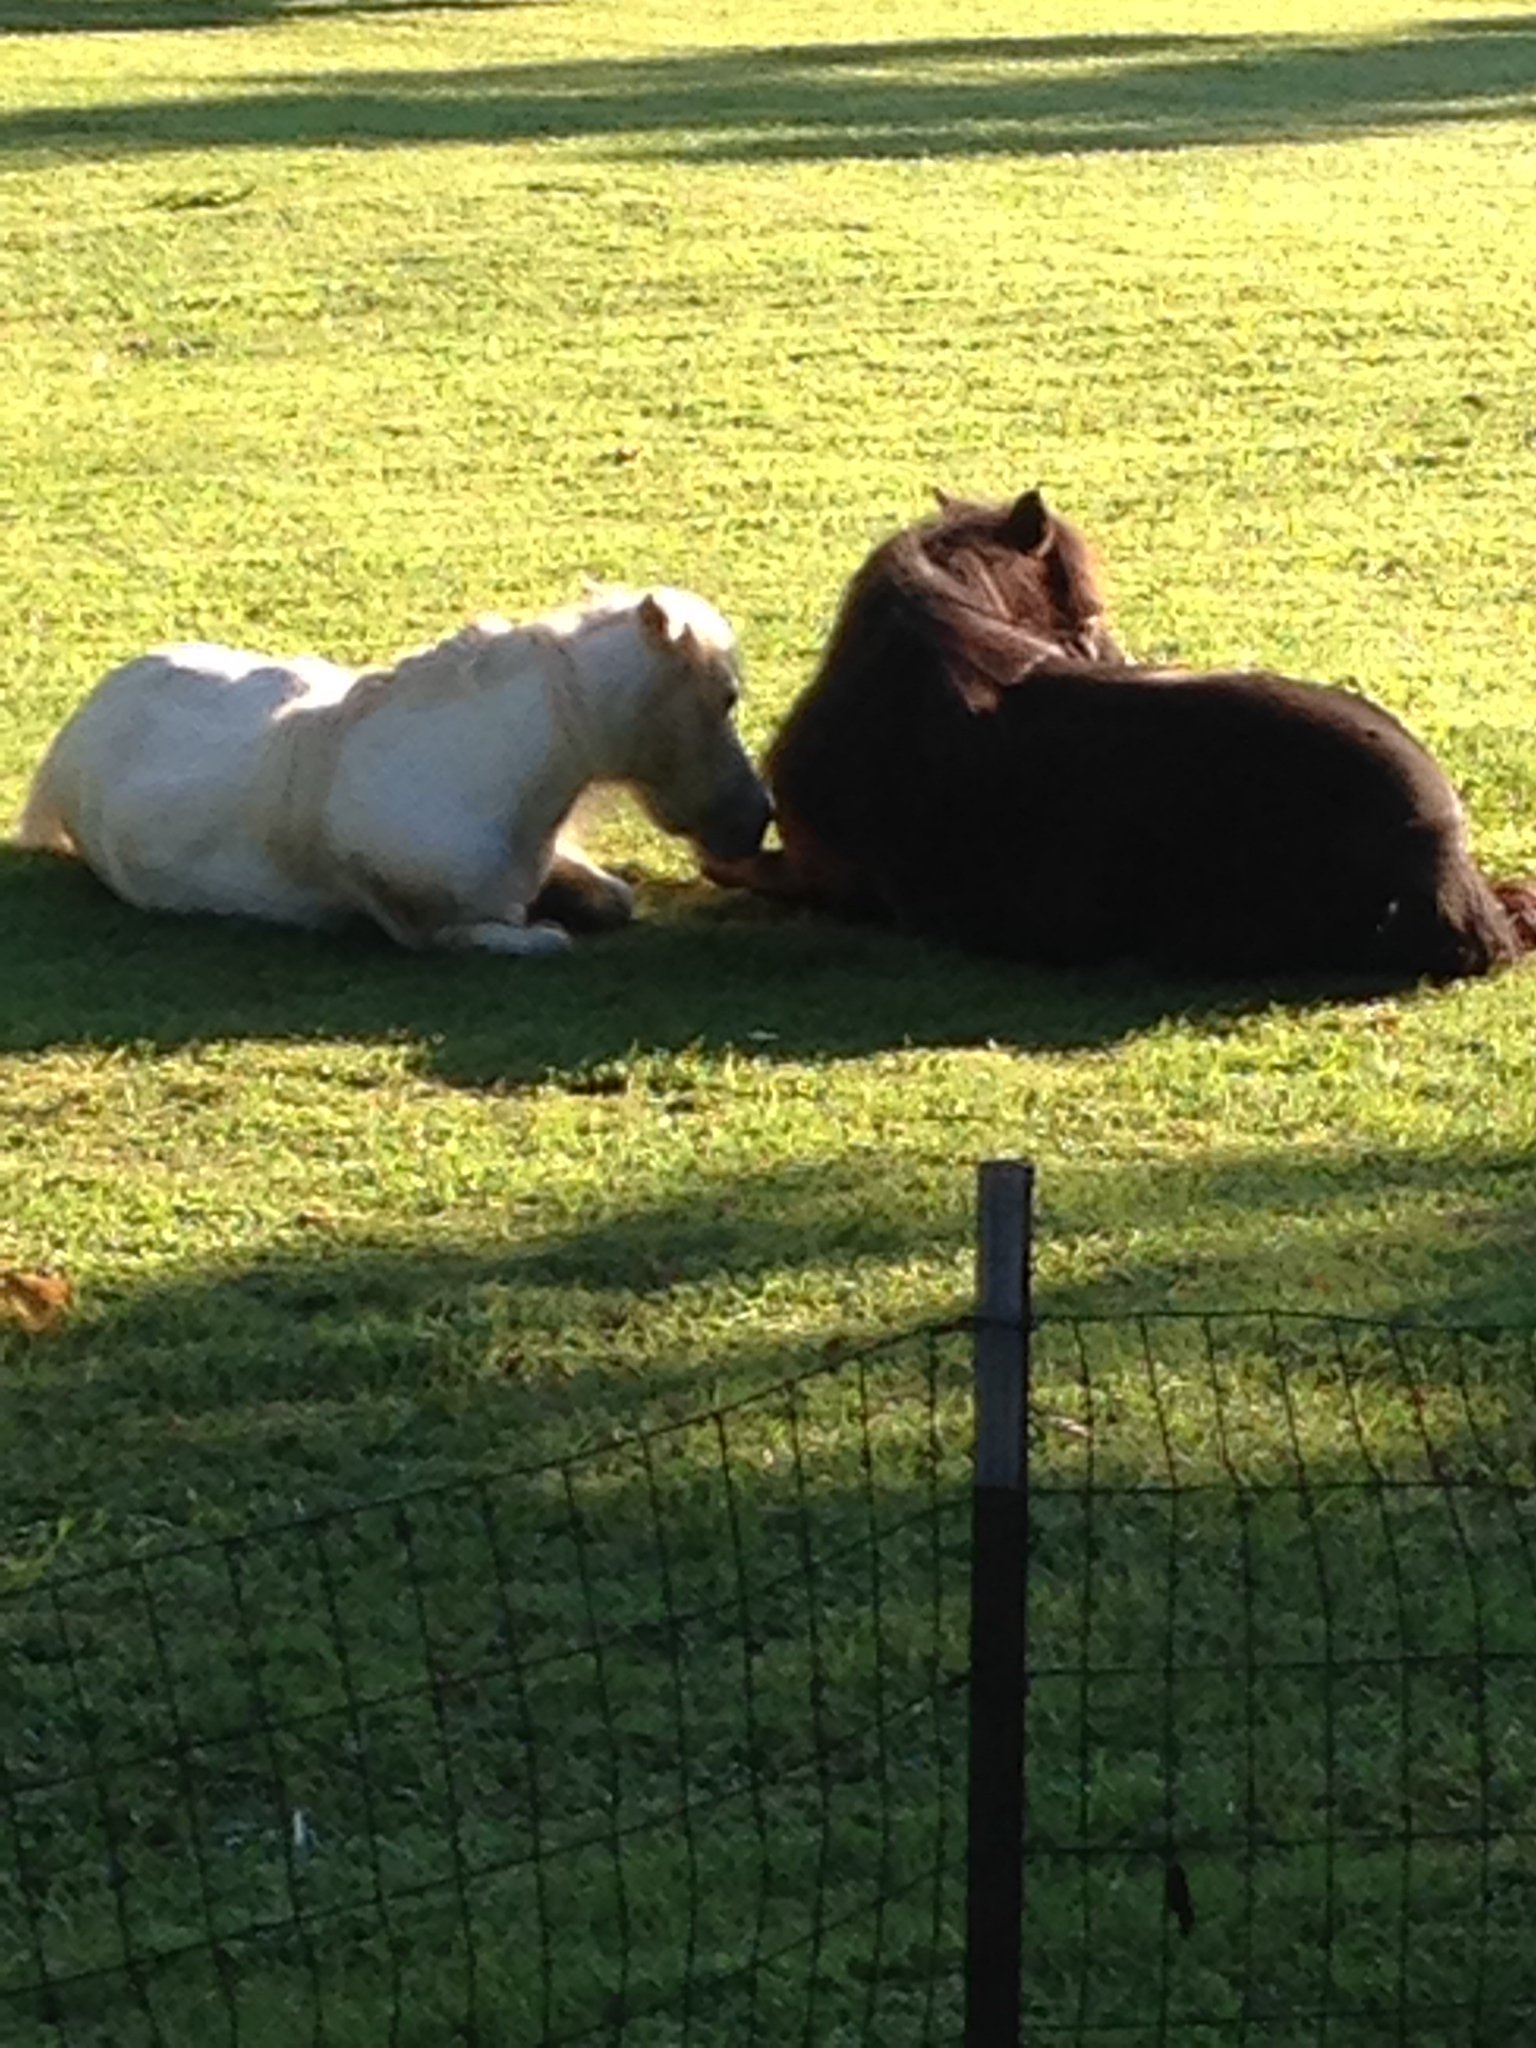 It was a heart-wrenching discovery for a St. Joseph family when they found their beloved miniature horses were brutally attacked by dogs in their backyard.(Submitted)